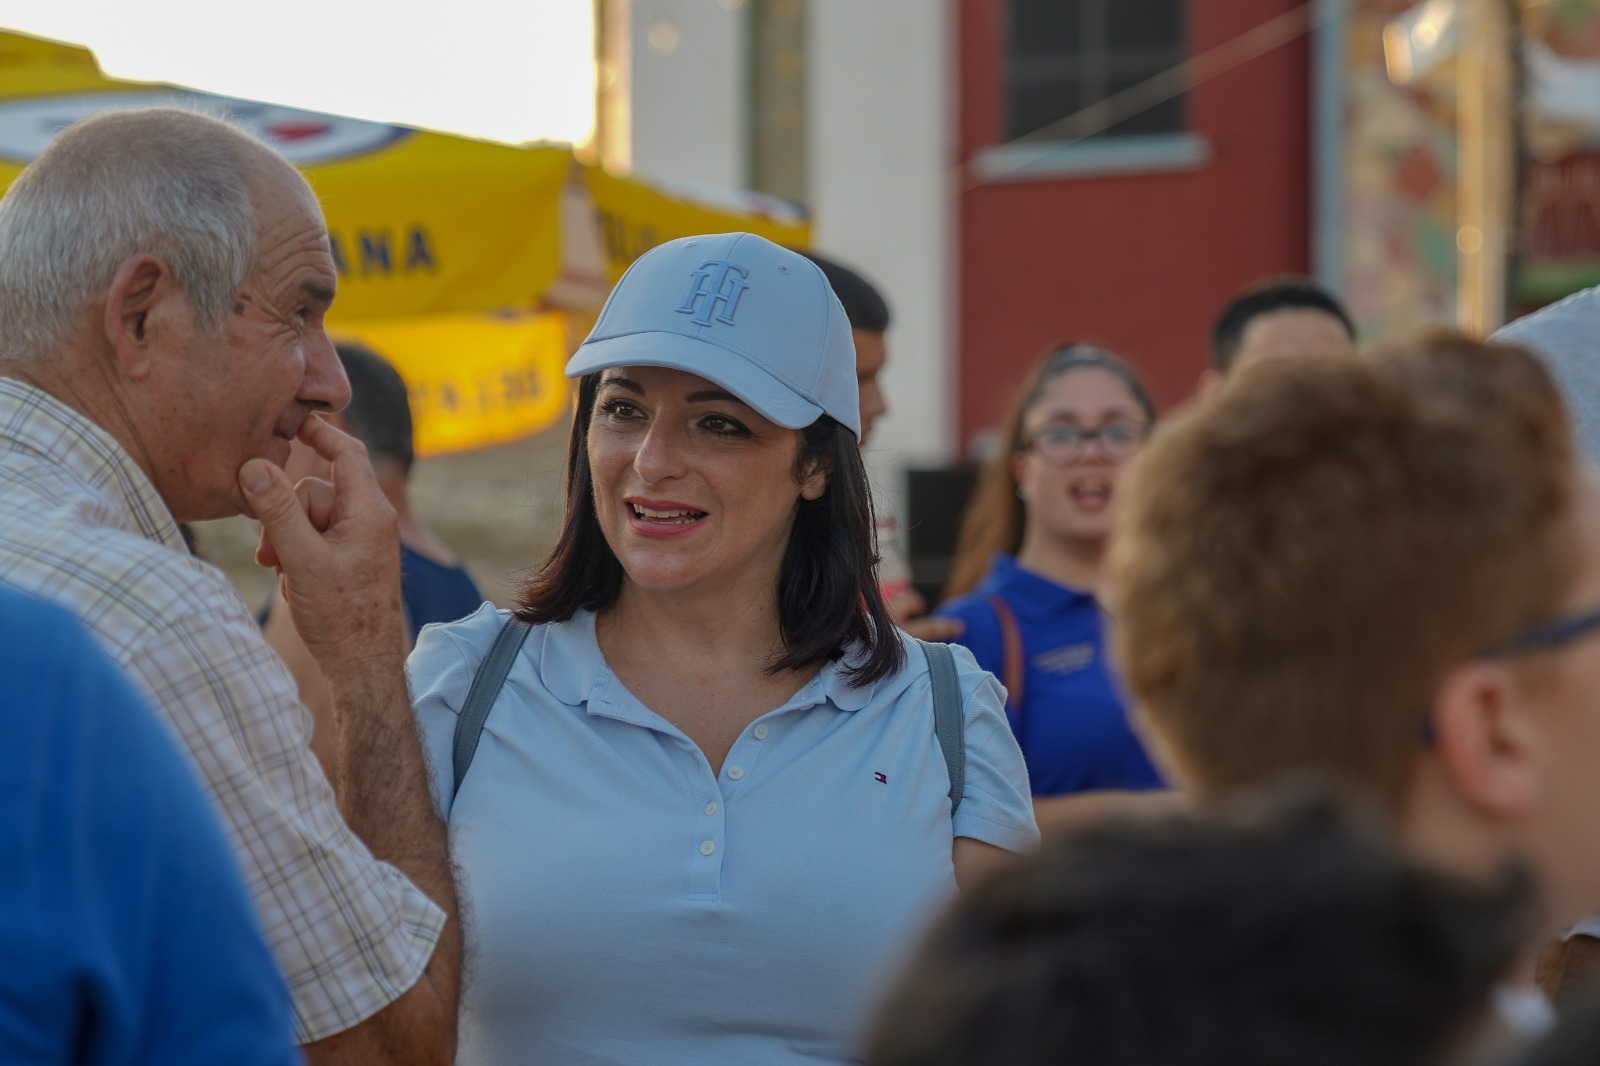 PRESS RELEASE BY THE MINISTRY FOR TOURISM AND CONSUMER PROTECTION  Thousands flock to Wied iż-Żurrieq last weekend